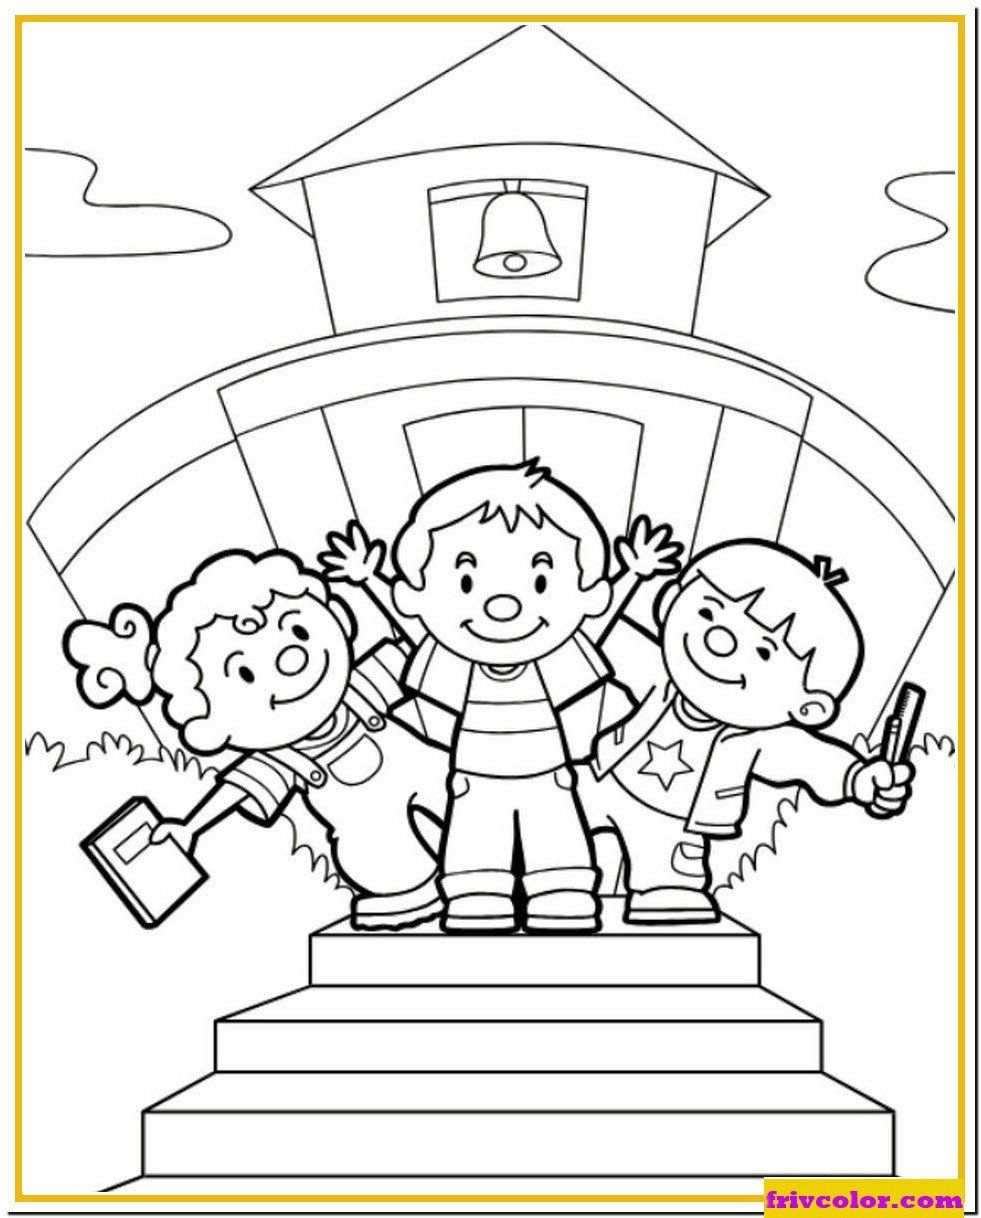 Coloring Pages Back to School Back to School September